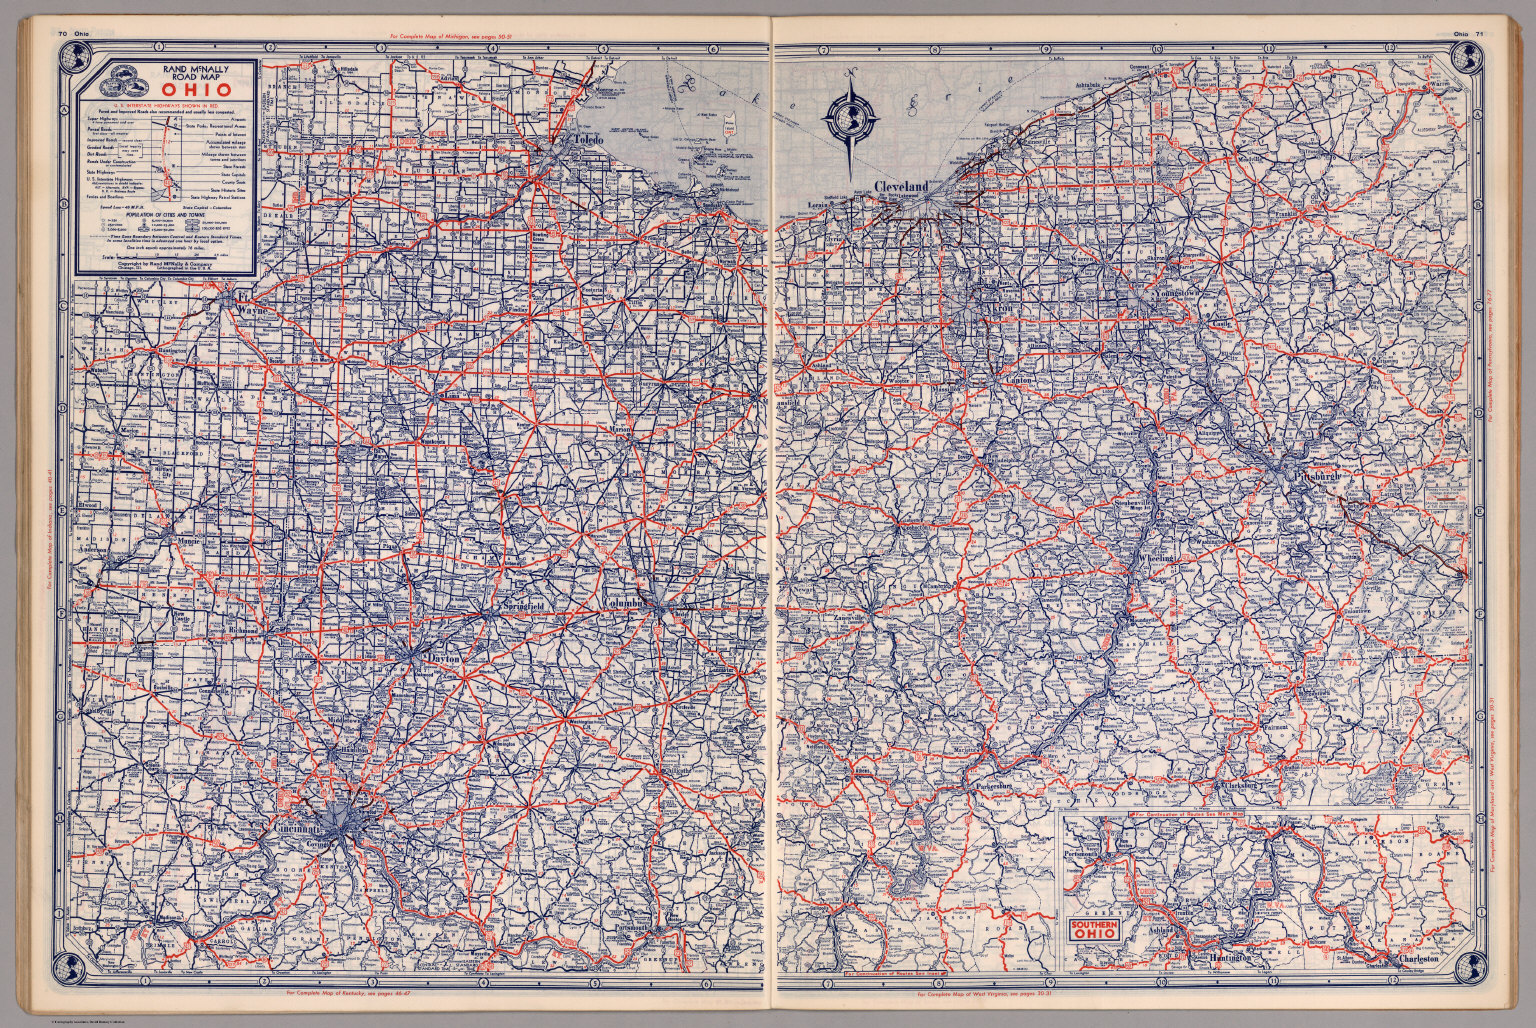 Road Map Of Ohio David Rumsey Historical Map Collection - Ohio road map